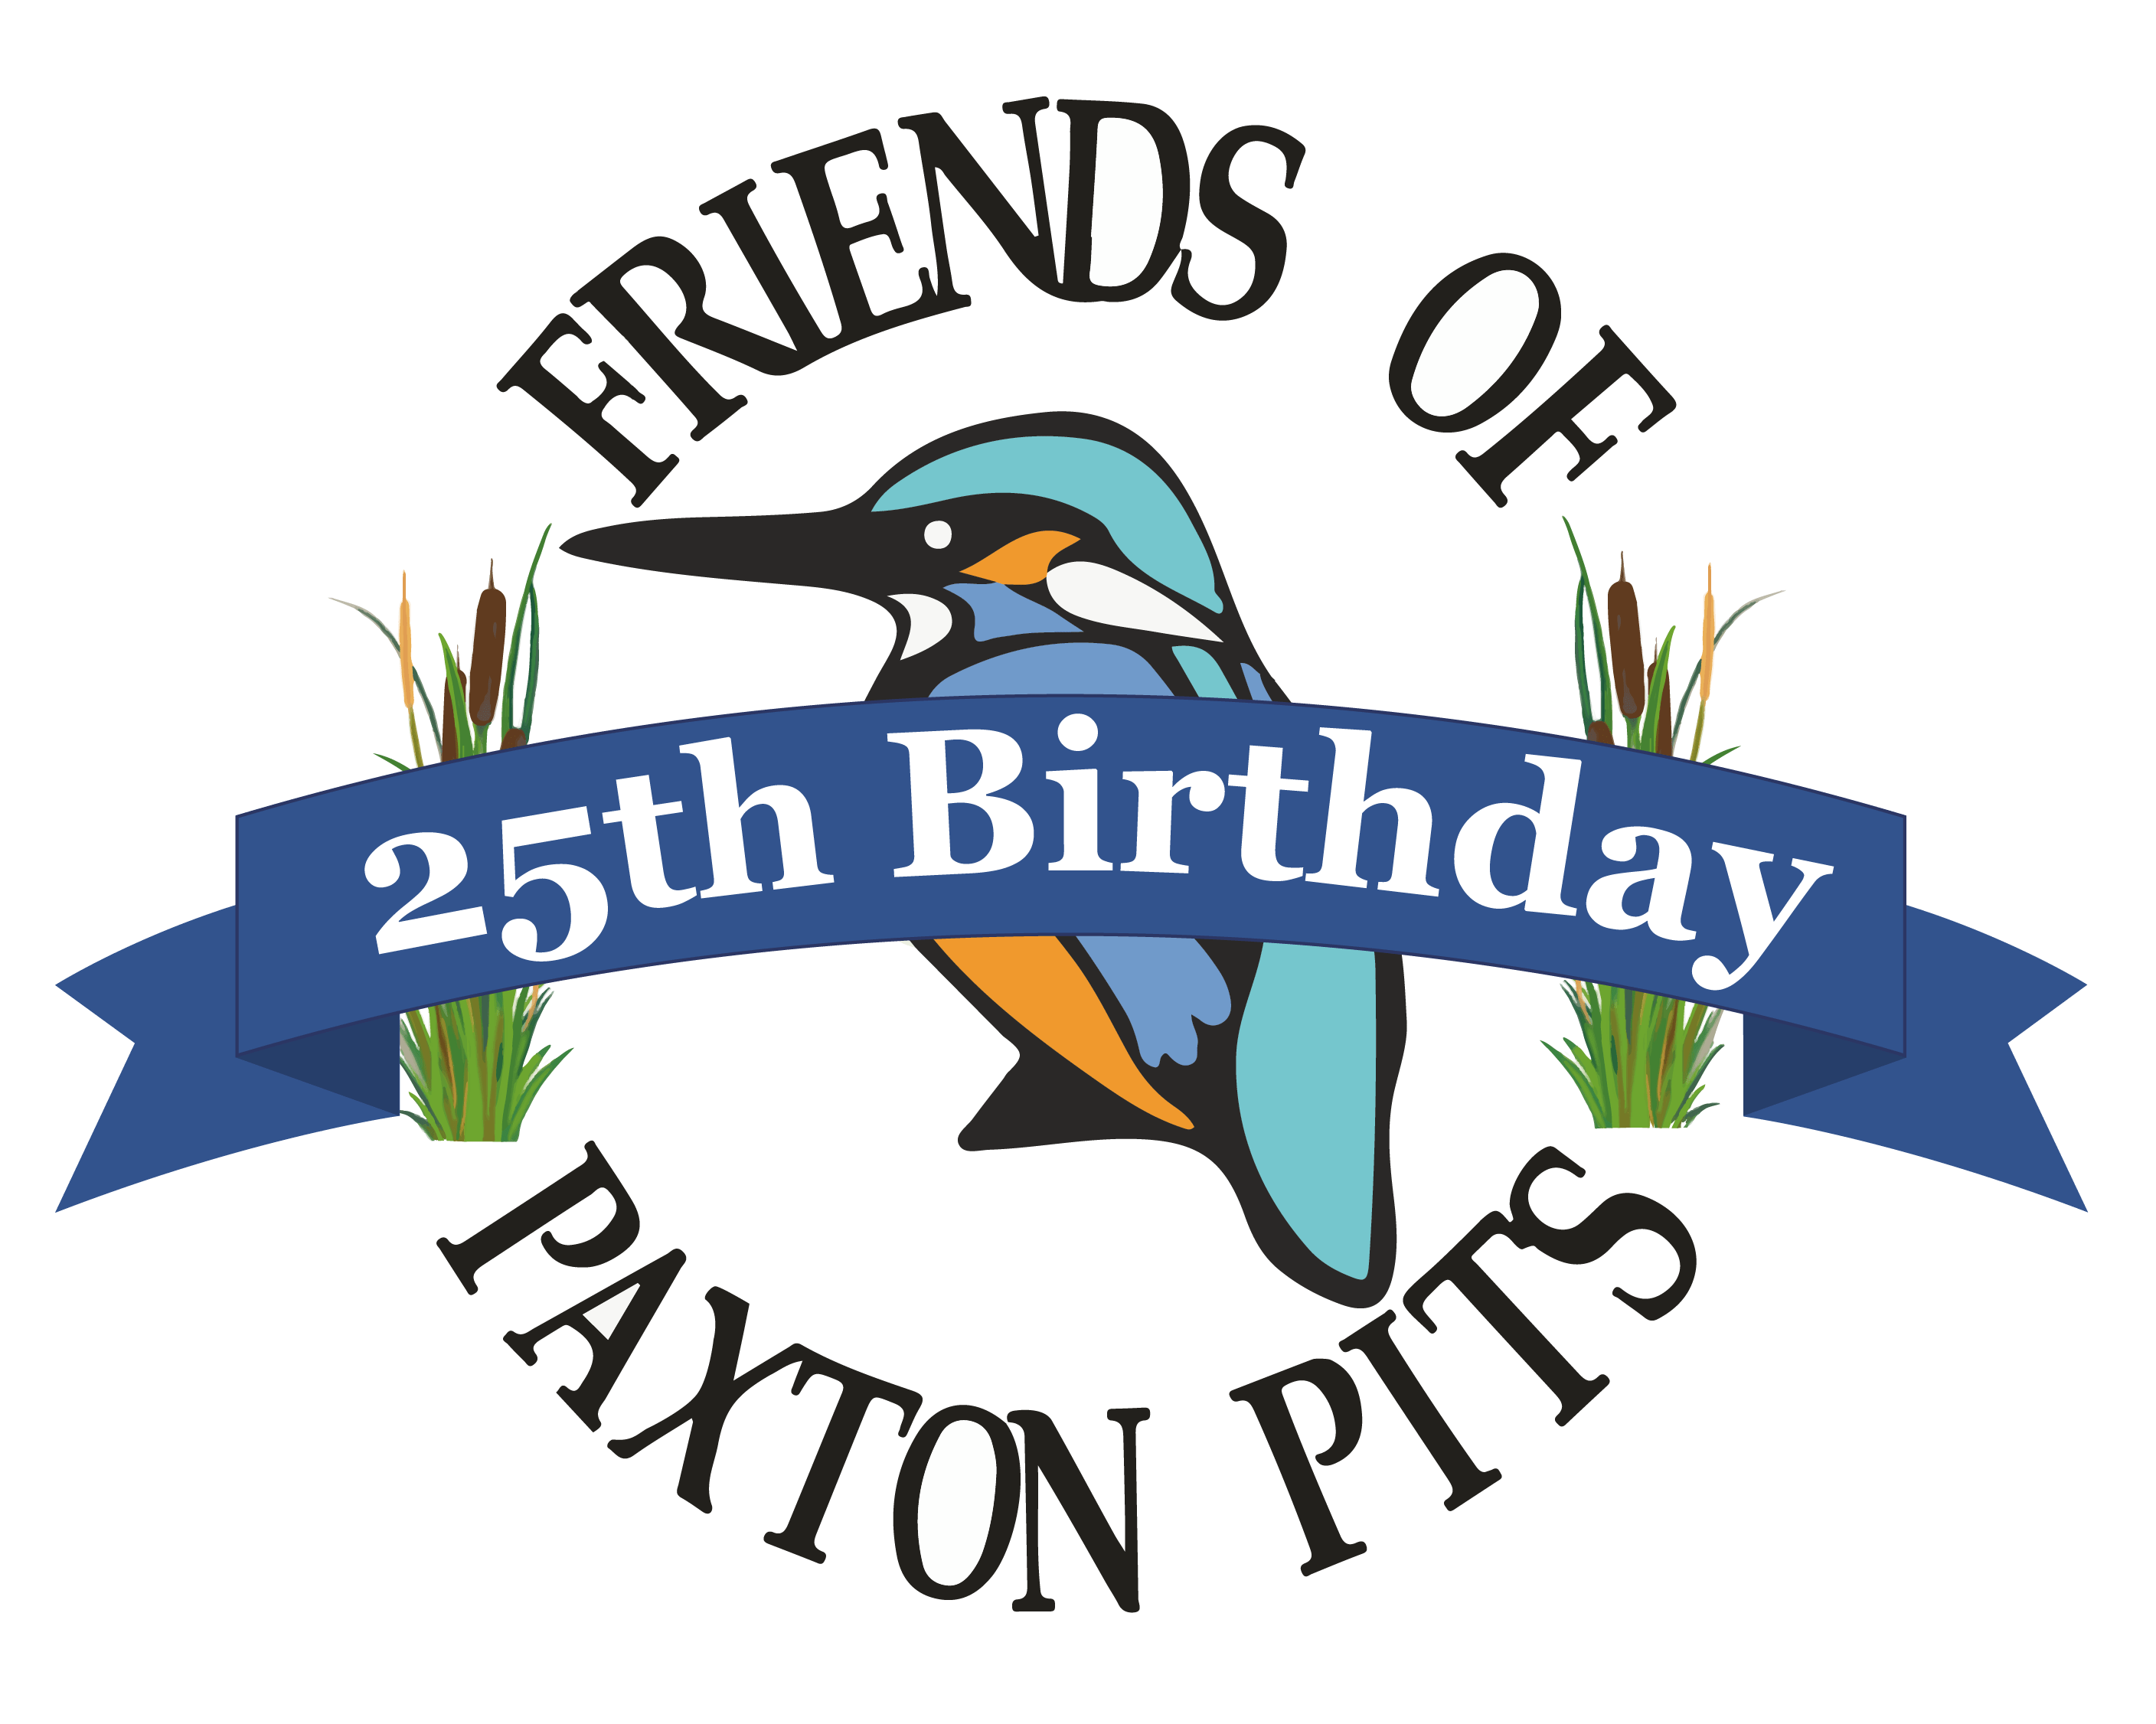 The Friends of Paxton Pits 25th Birthday logo